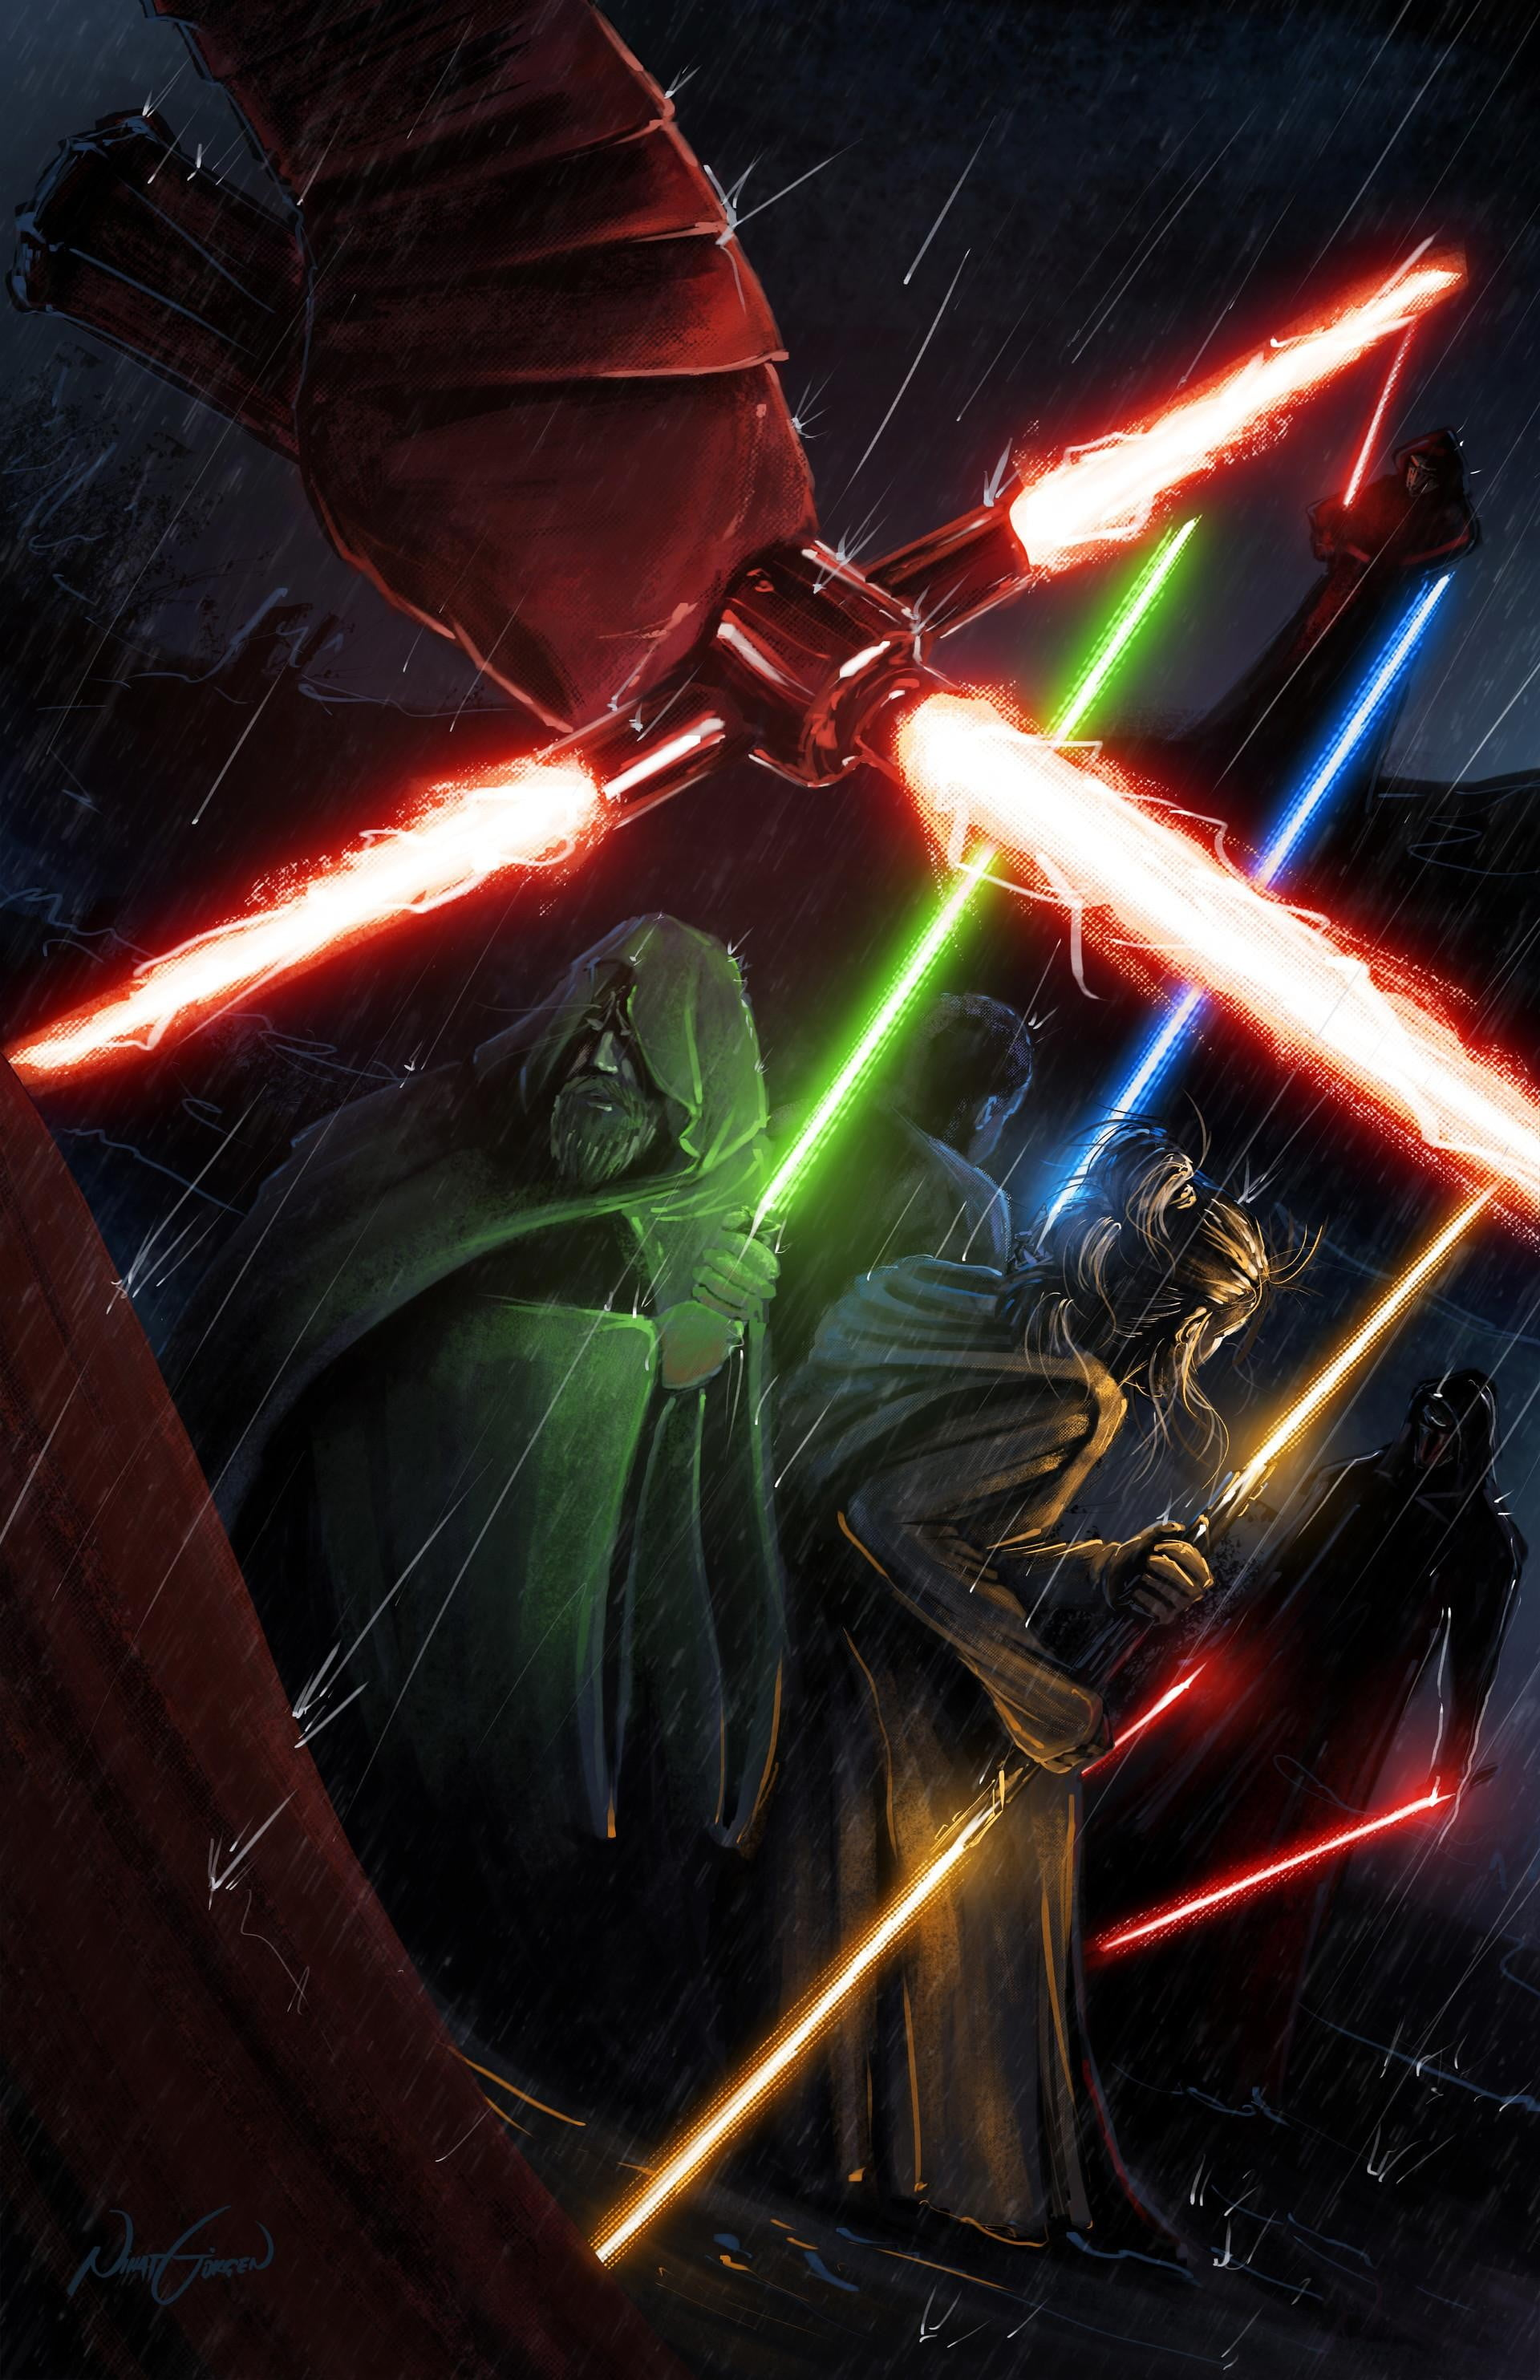 Star Wars Iphone Wallpaper Lightsaber 1920x2967 Download Hd Wallpaper Wallpapertip